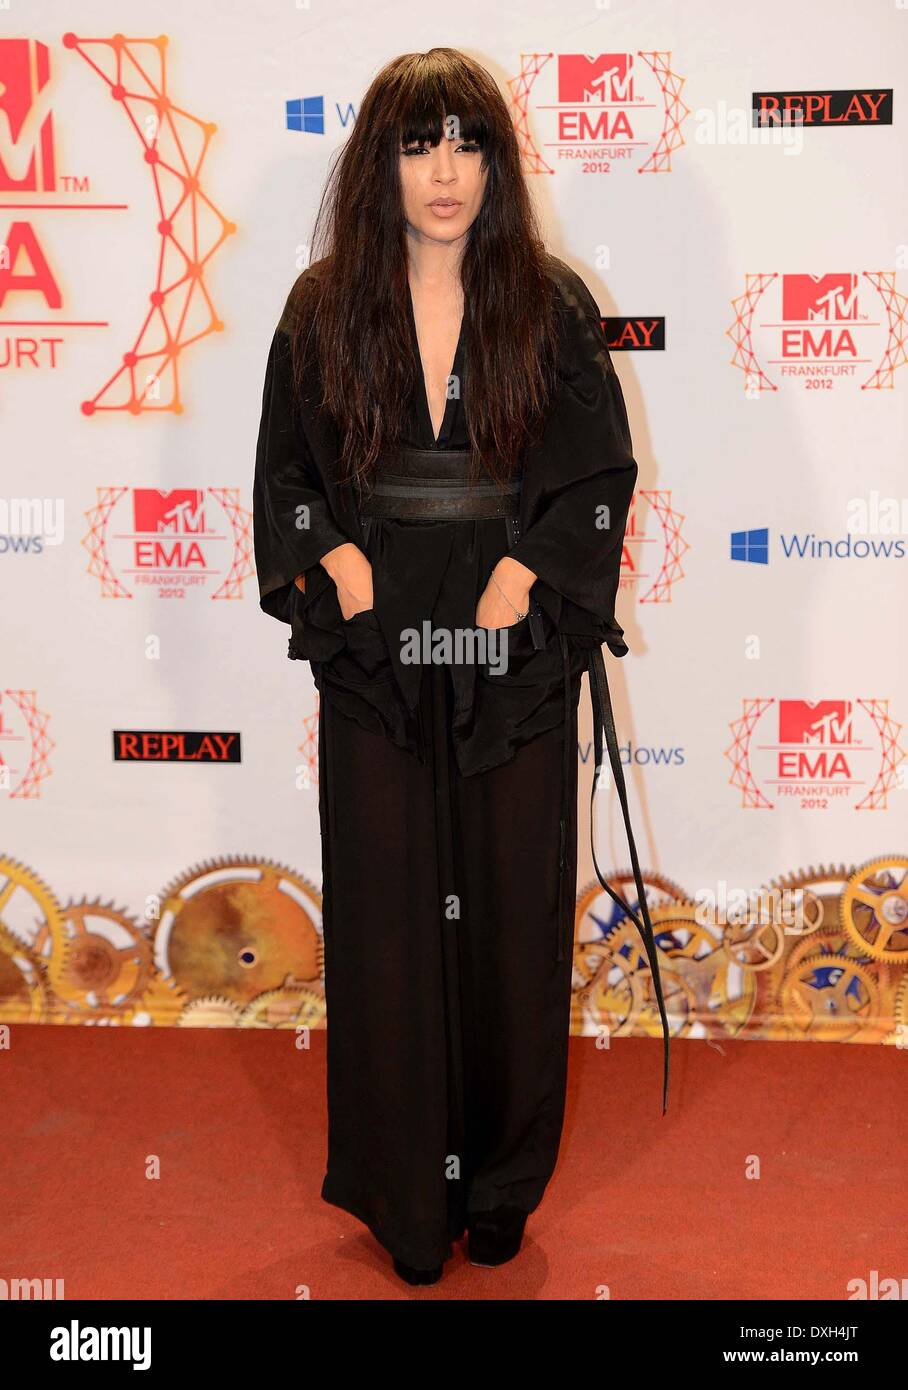 Loreen The MTV EMA's 2012 held at Festhalle - Arrivals Featuring: Loreen Where: Frankfurt, Germany Stock Photo